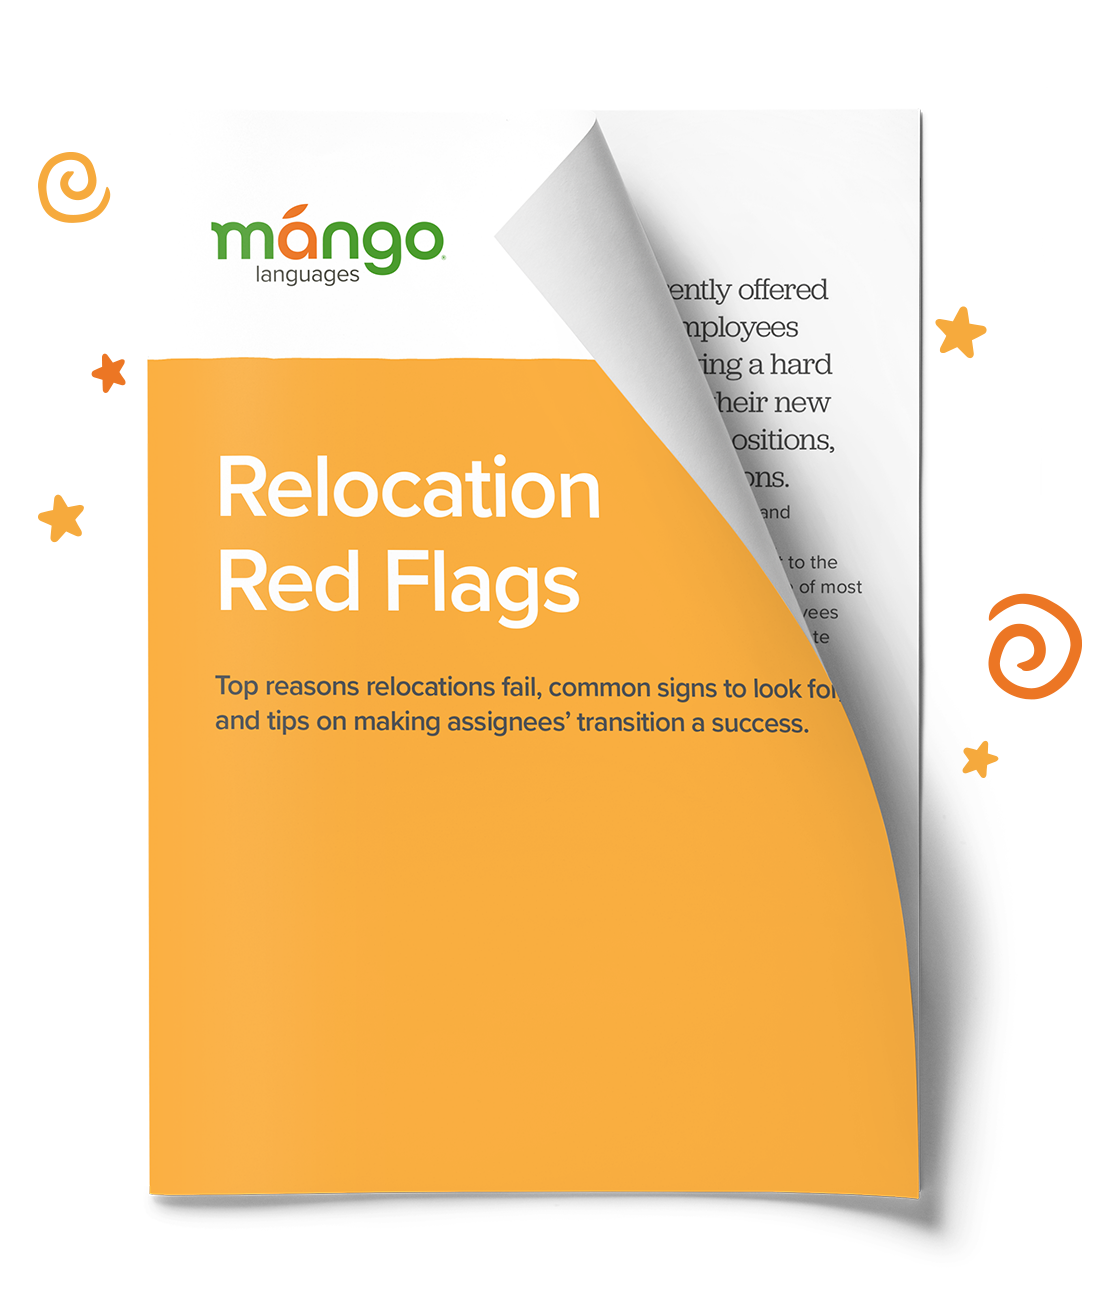 mango-inbound-relocation-red-flags